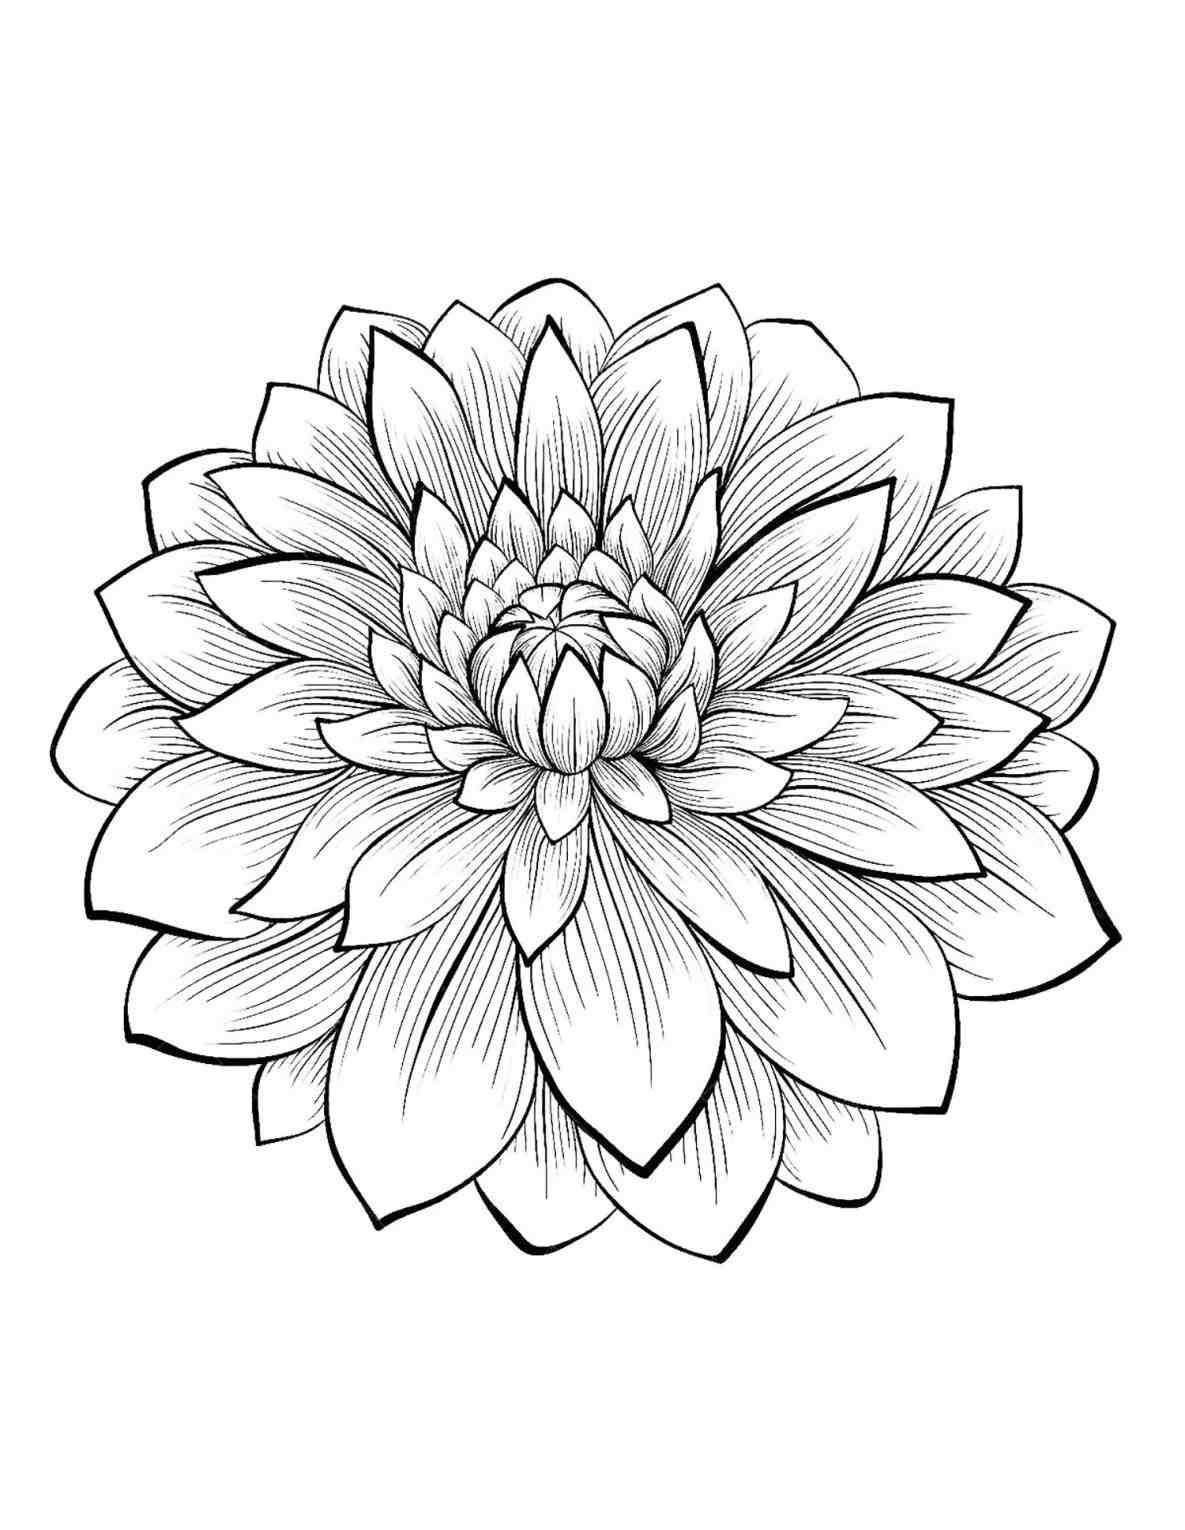 1185x1530 Lapse A Simple Floral Design With Pencil Ing Cool Flower Designs